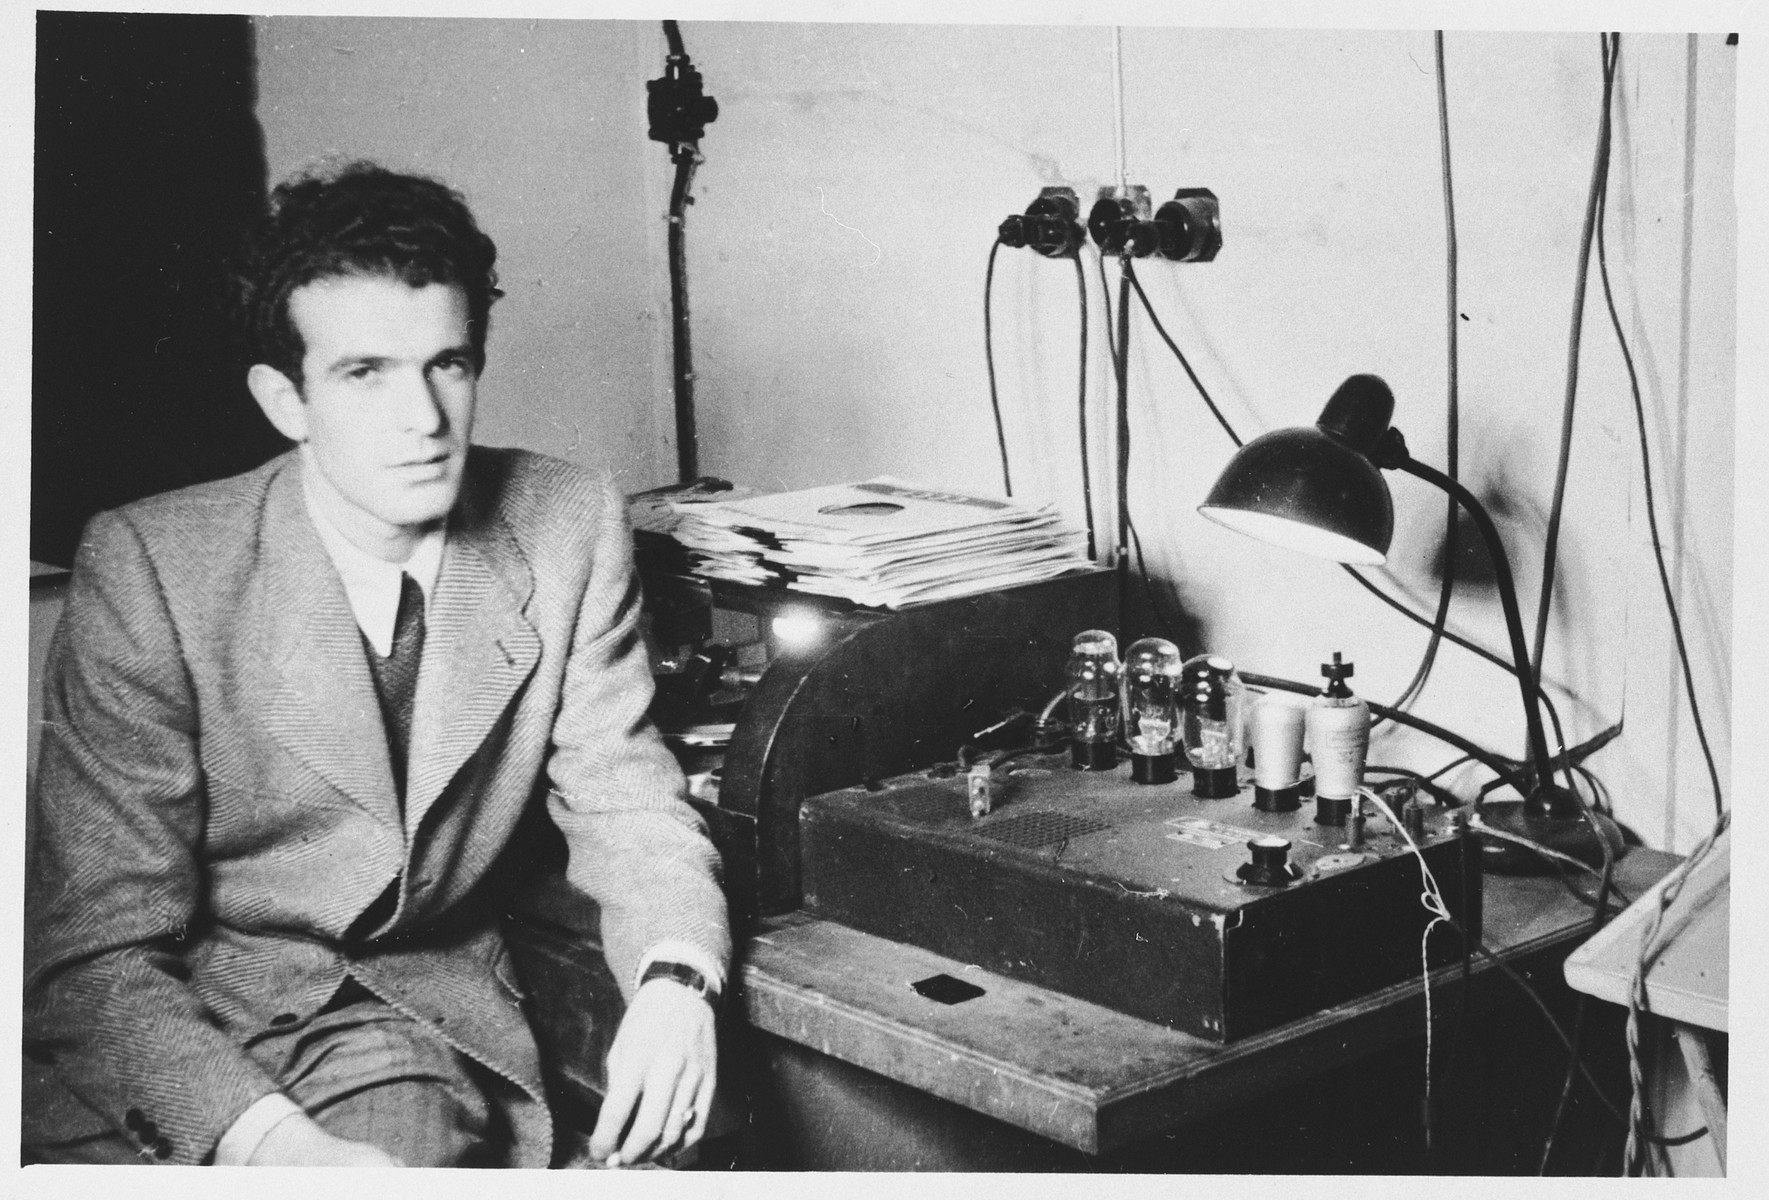 A Jewish DP radio broadcaster poses by his equipment and a stack of records in the Schlachtensee displaced persons camp.